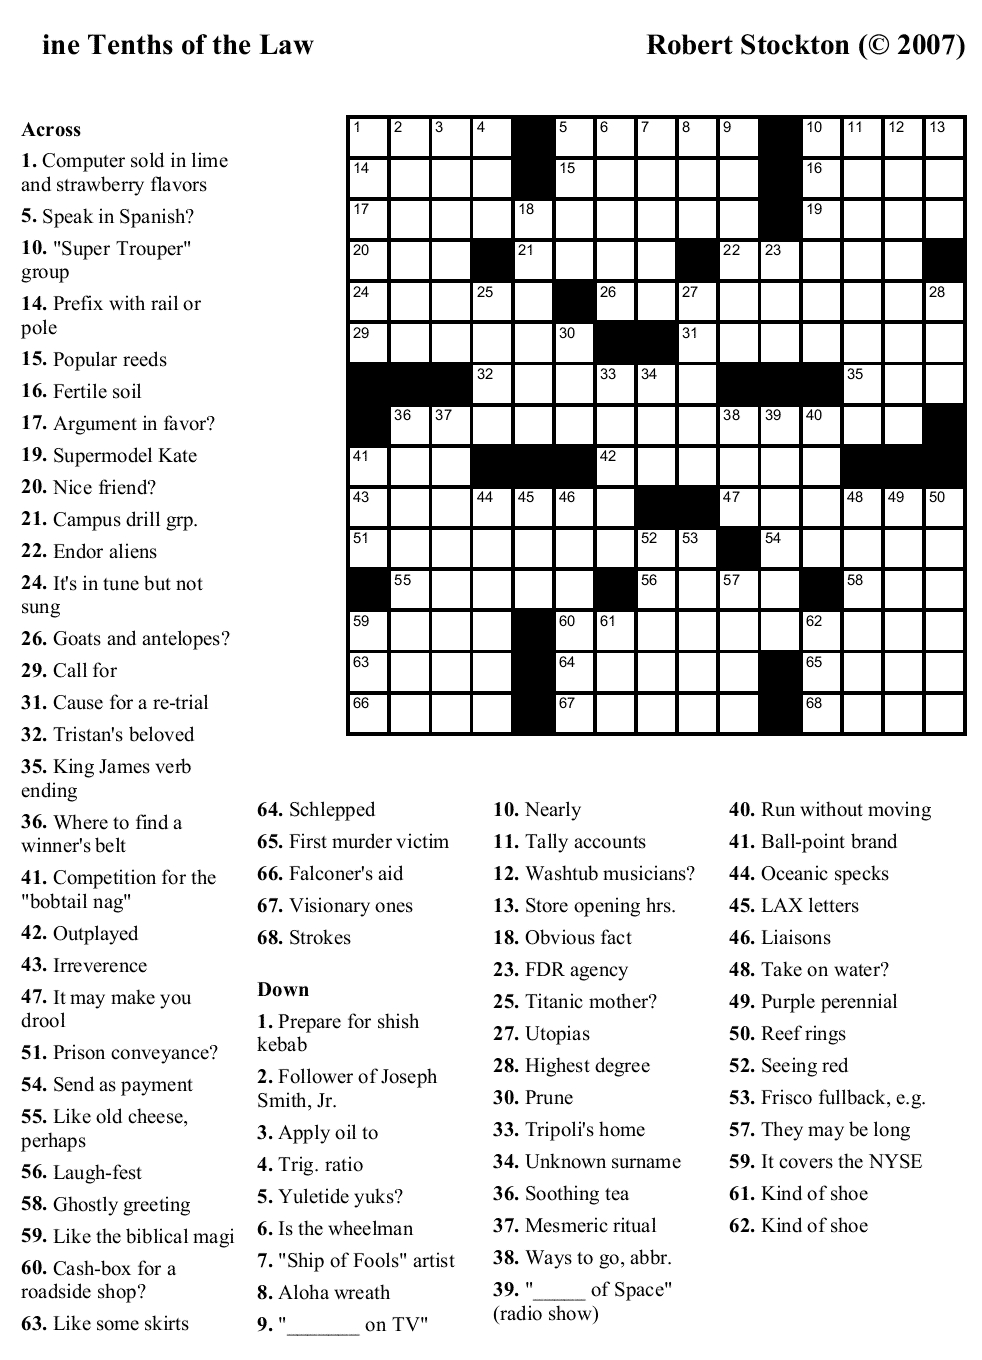 Easy Printable Crossword Puzzels - Infocap Ltd. - Free Online Printable Easy Crossword Puzzles